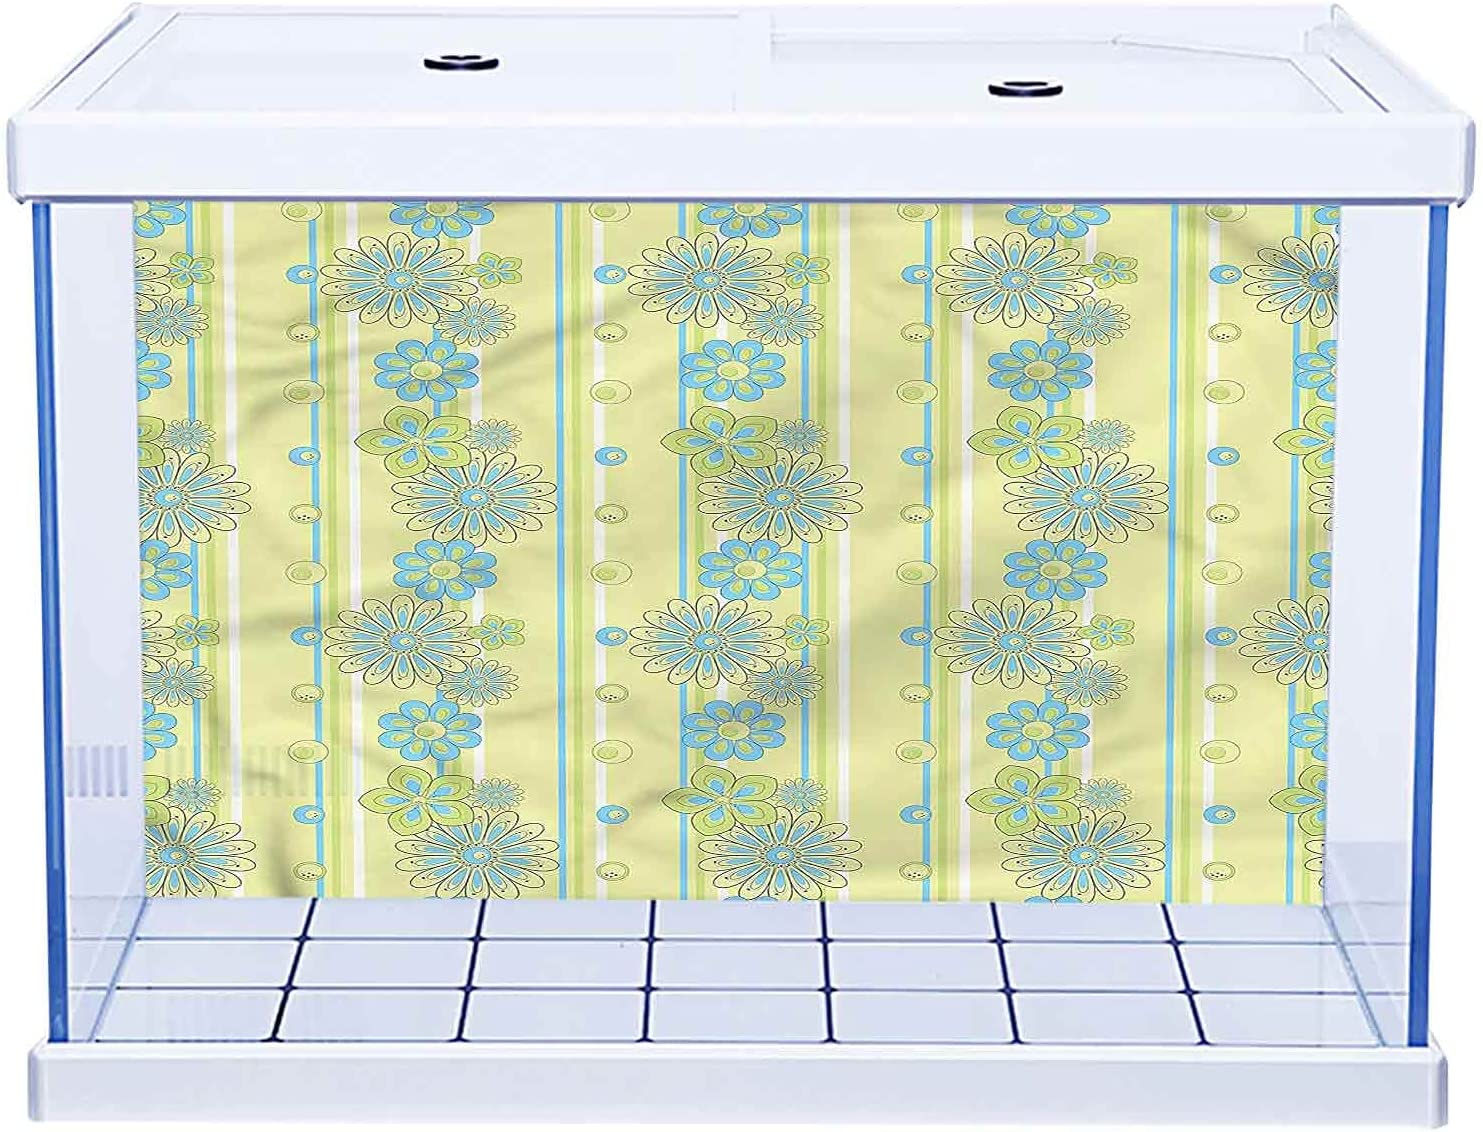 SUZM Dealing full price reduction Fish Tank Wallpaper Aquarium and Background Limited time cheap sale Orn Blue Yellow